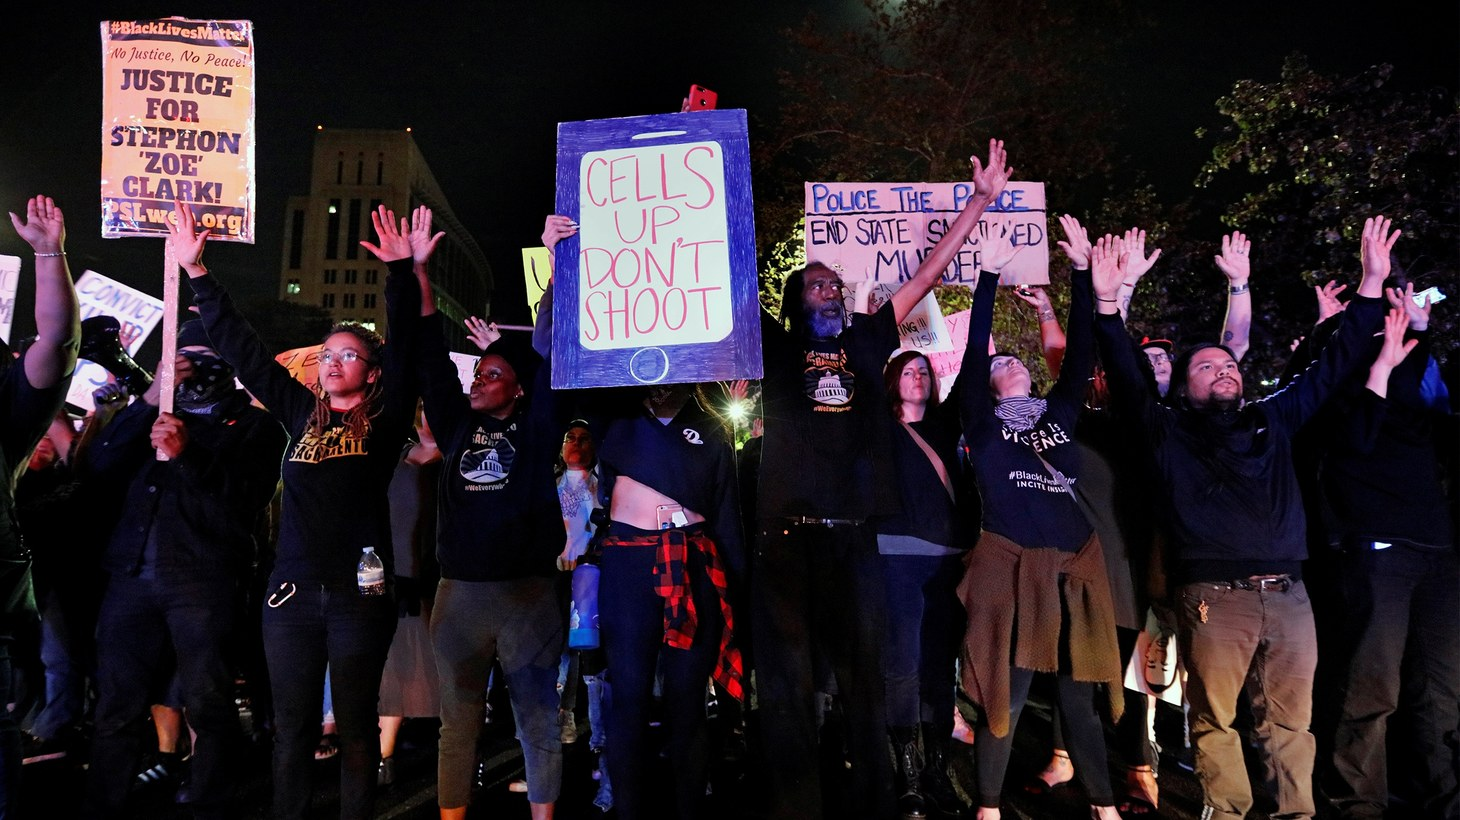 Demonstrators protest the police shooting of Stephon Clark, in Sacramento, California, U.S., March 30, 2018.